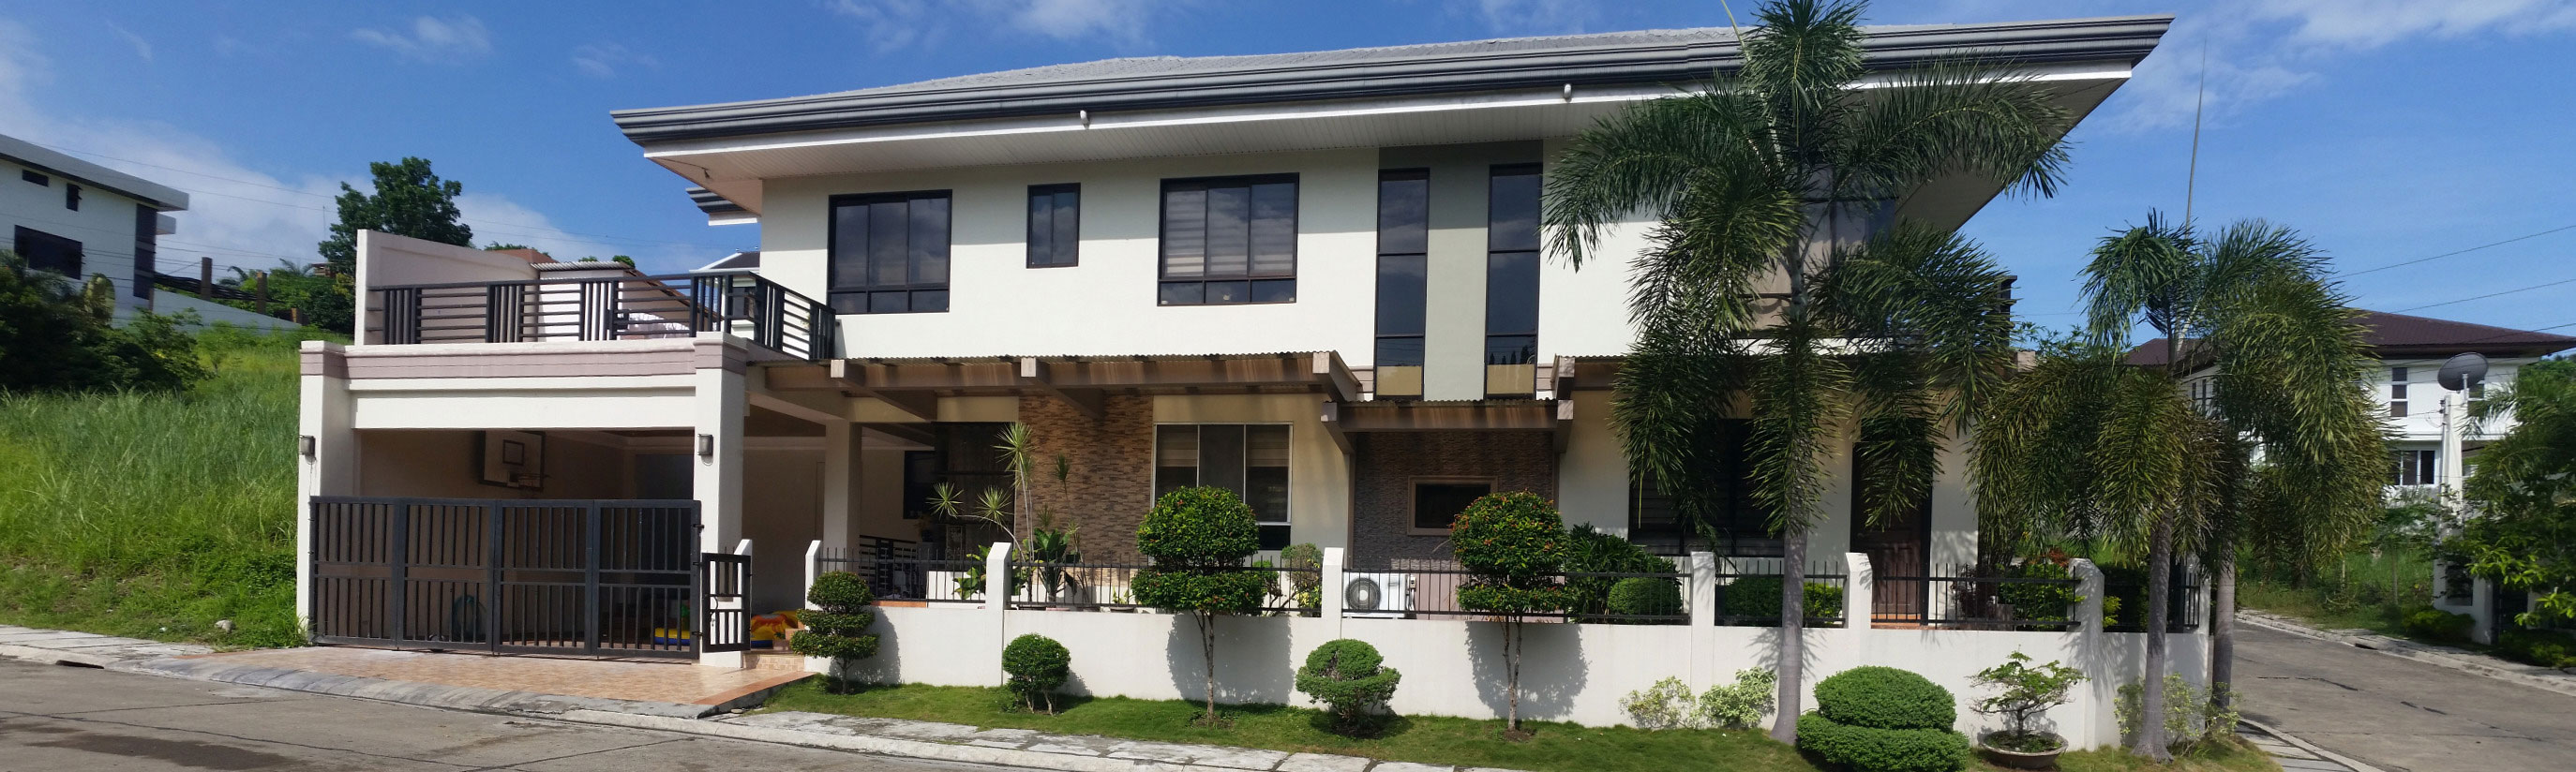 2 storey residential house and lot for sale in monteritz for 2 houses on one lot for sale